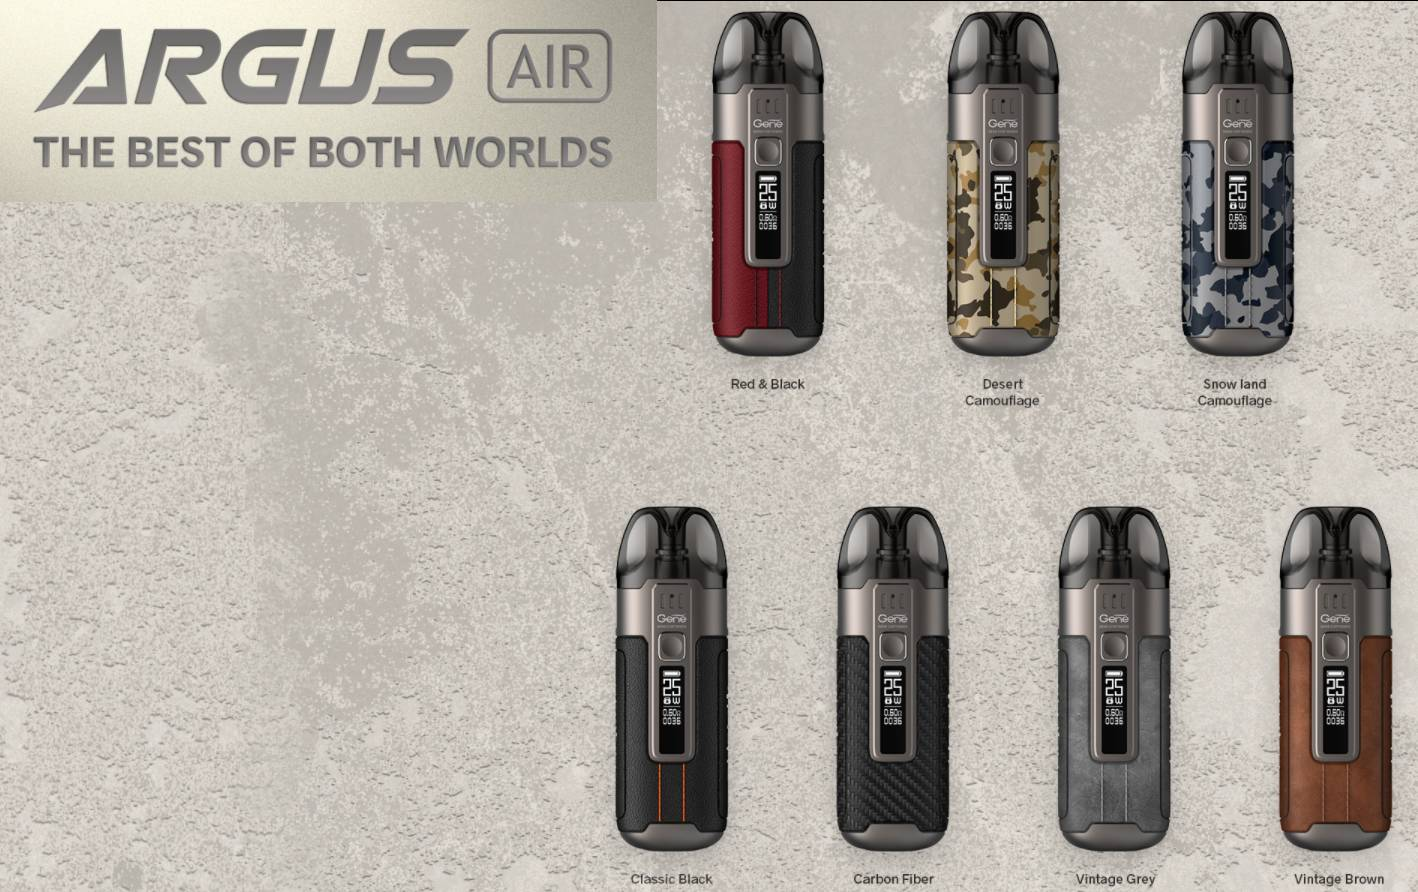 VooPoo ARGUS AIR 25W Pod System Kit Review